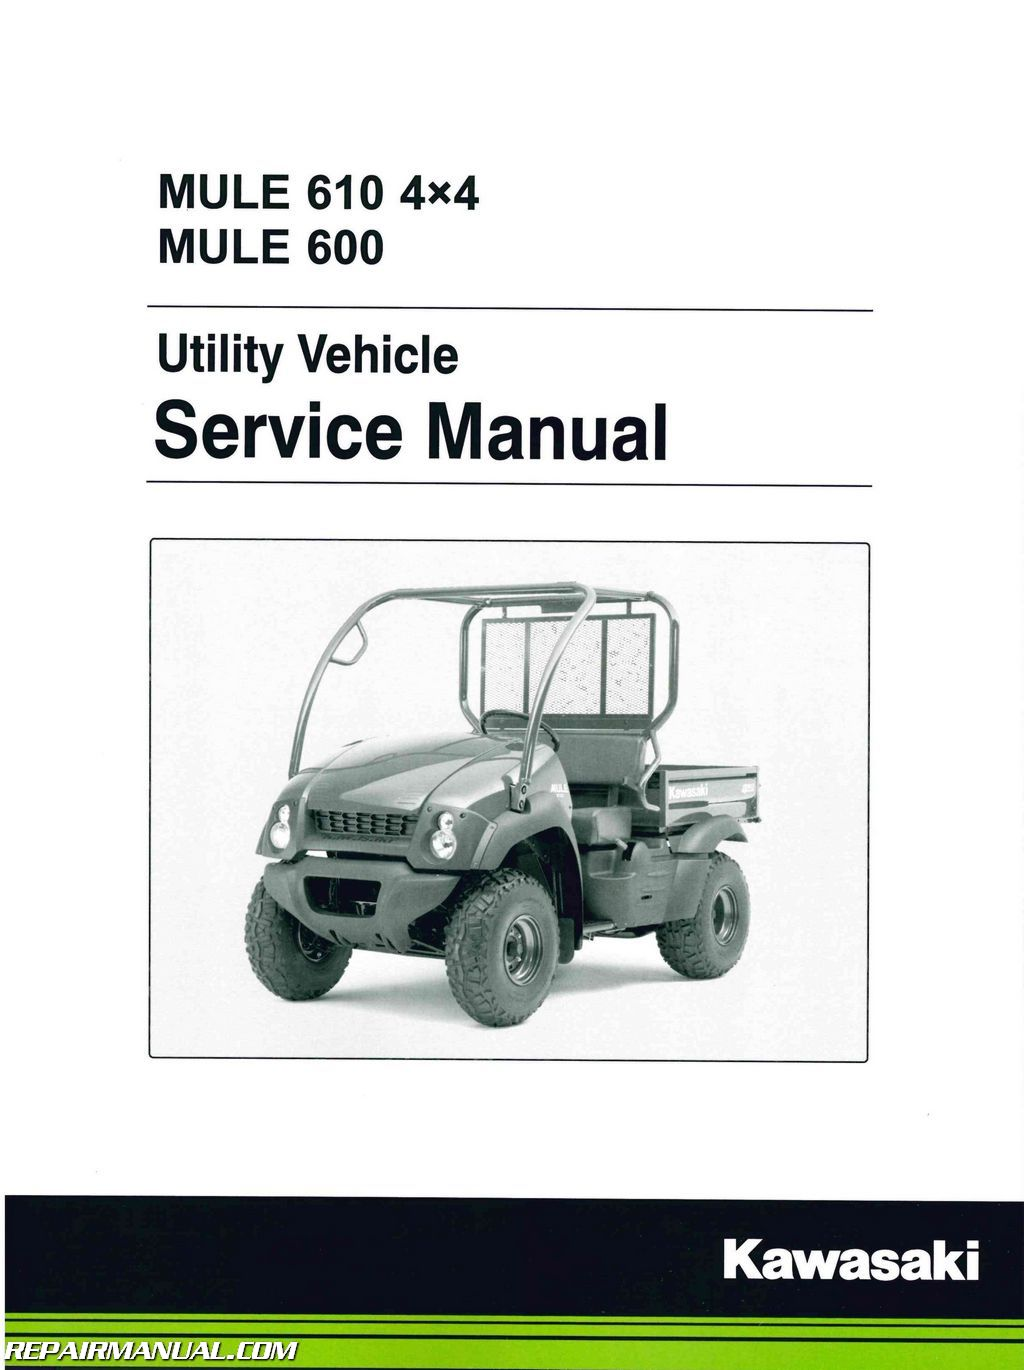 Kawasaki Mule Manual